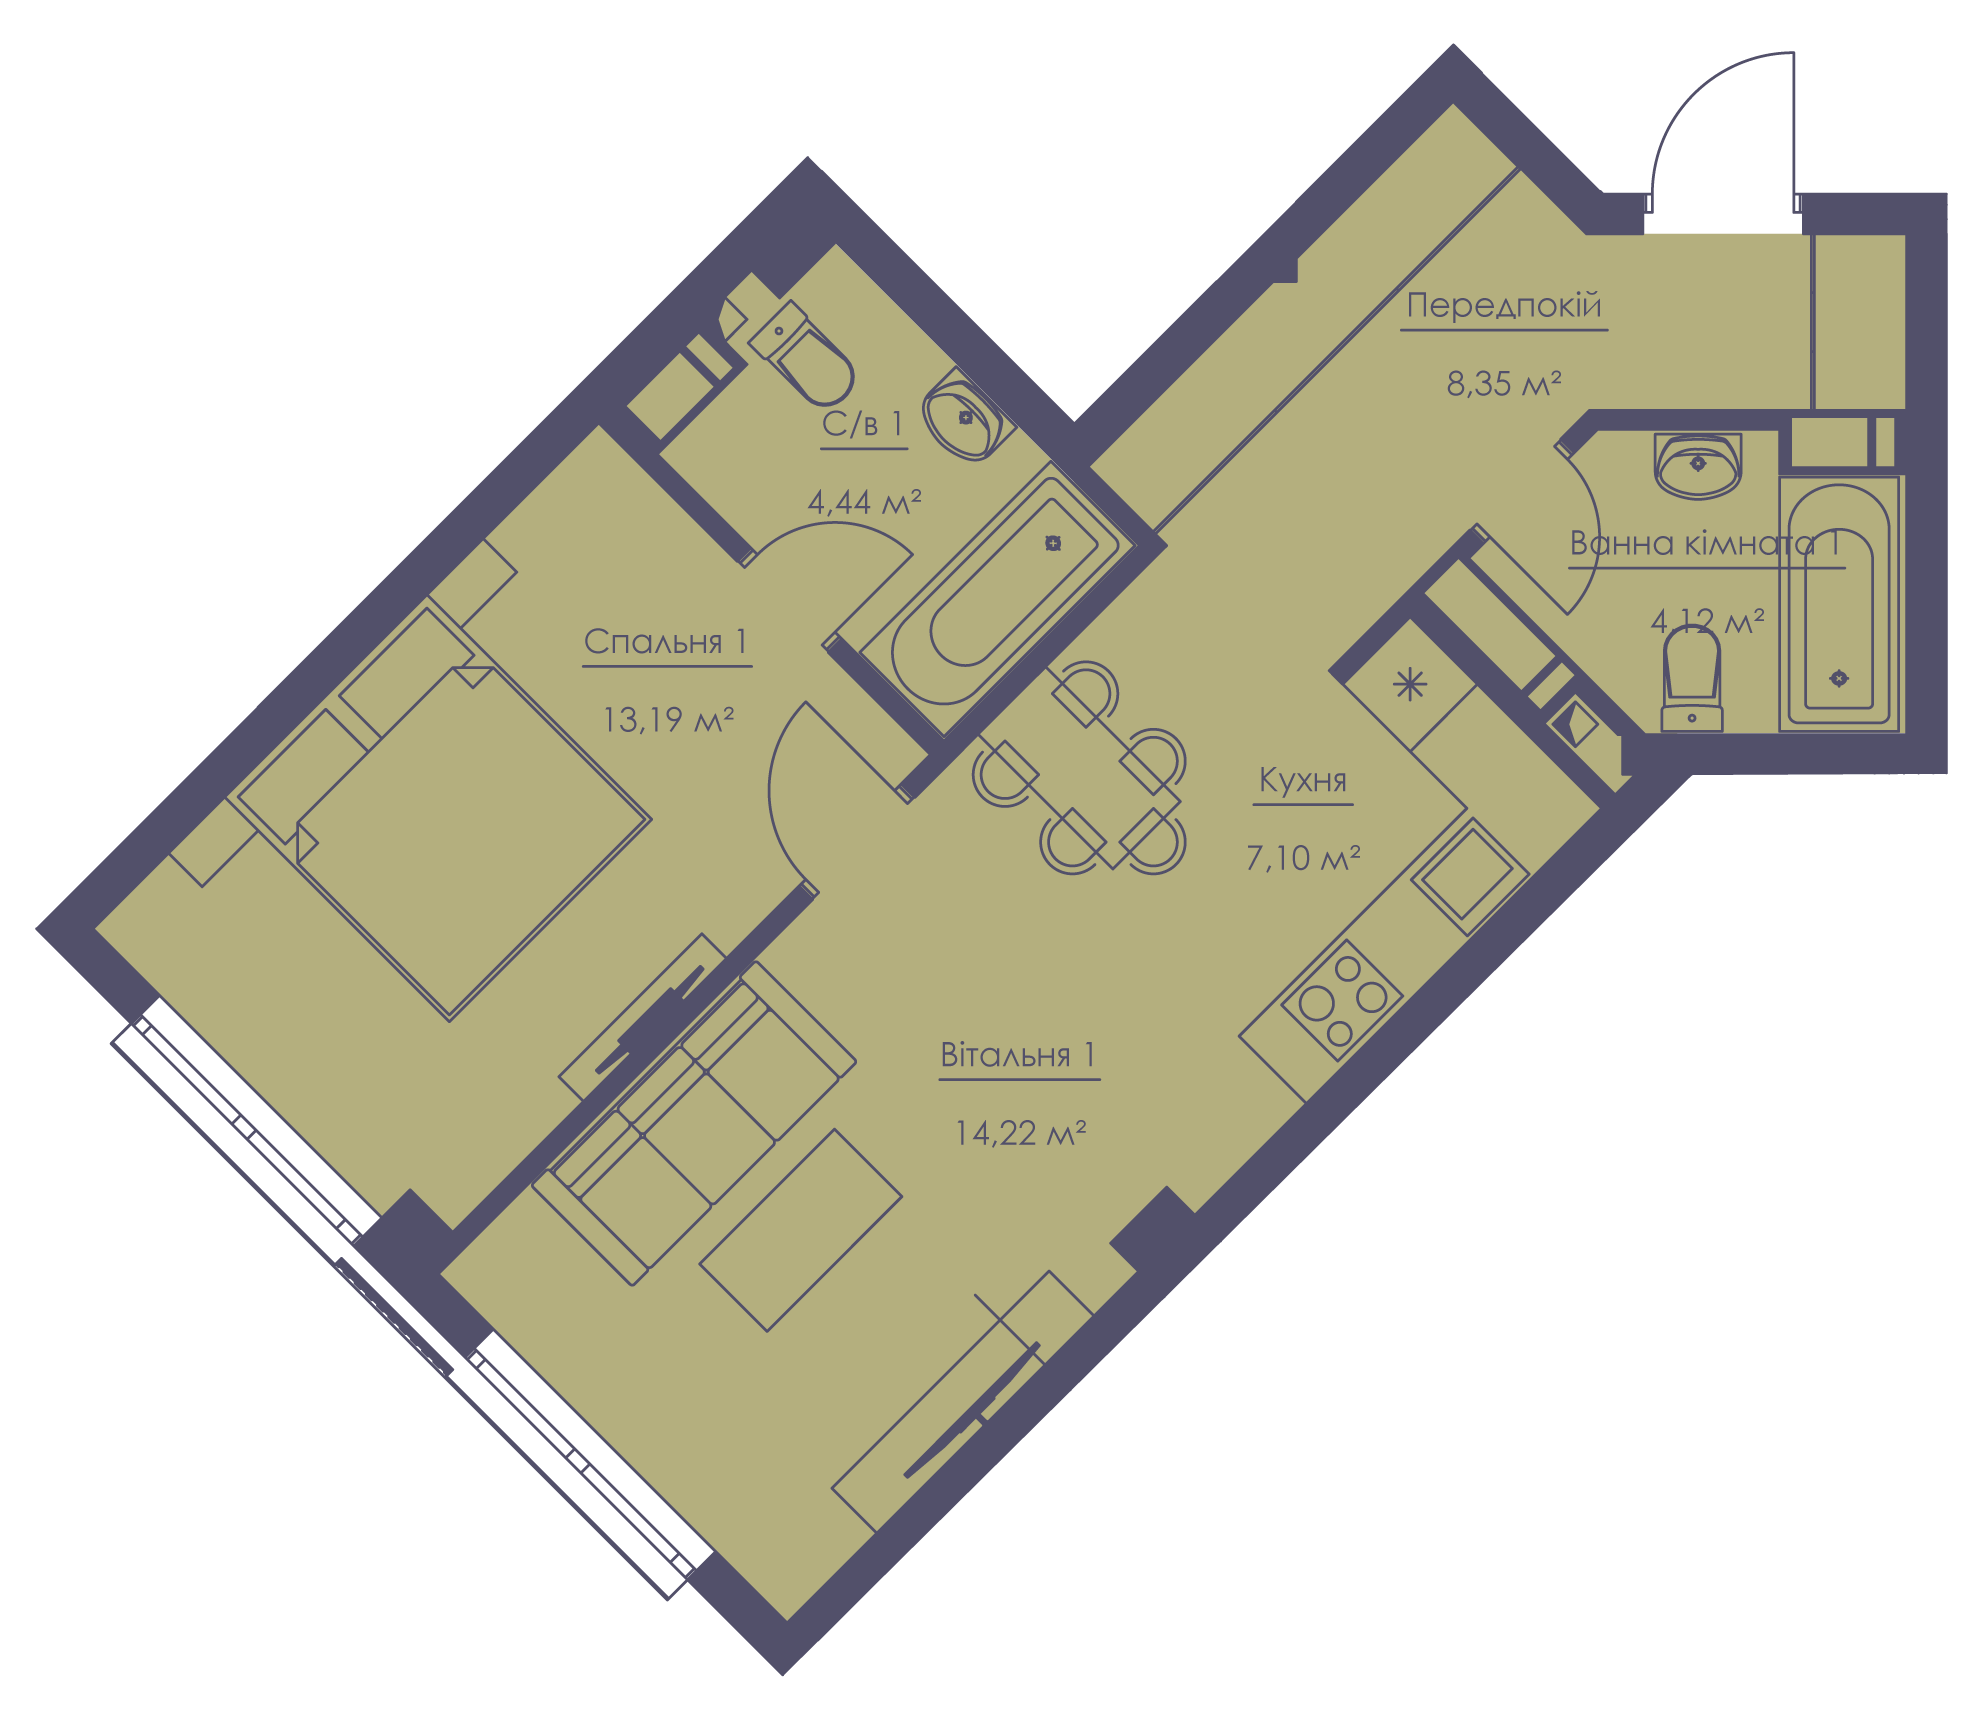 Apartment layout KV_148_3.2m_1_1_3-1